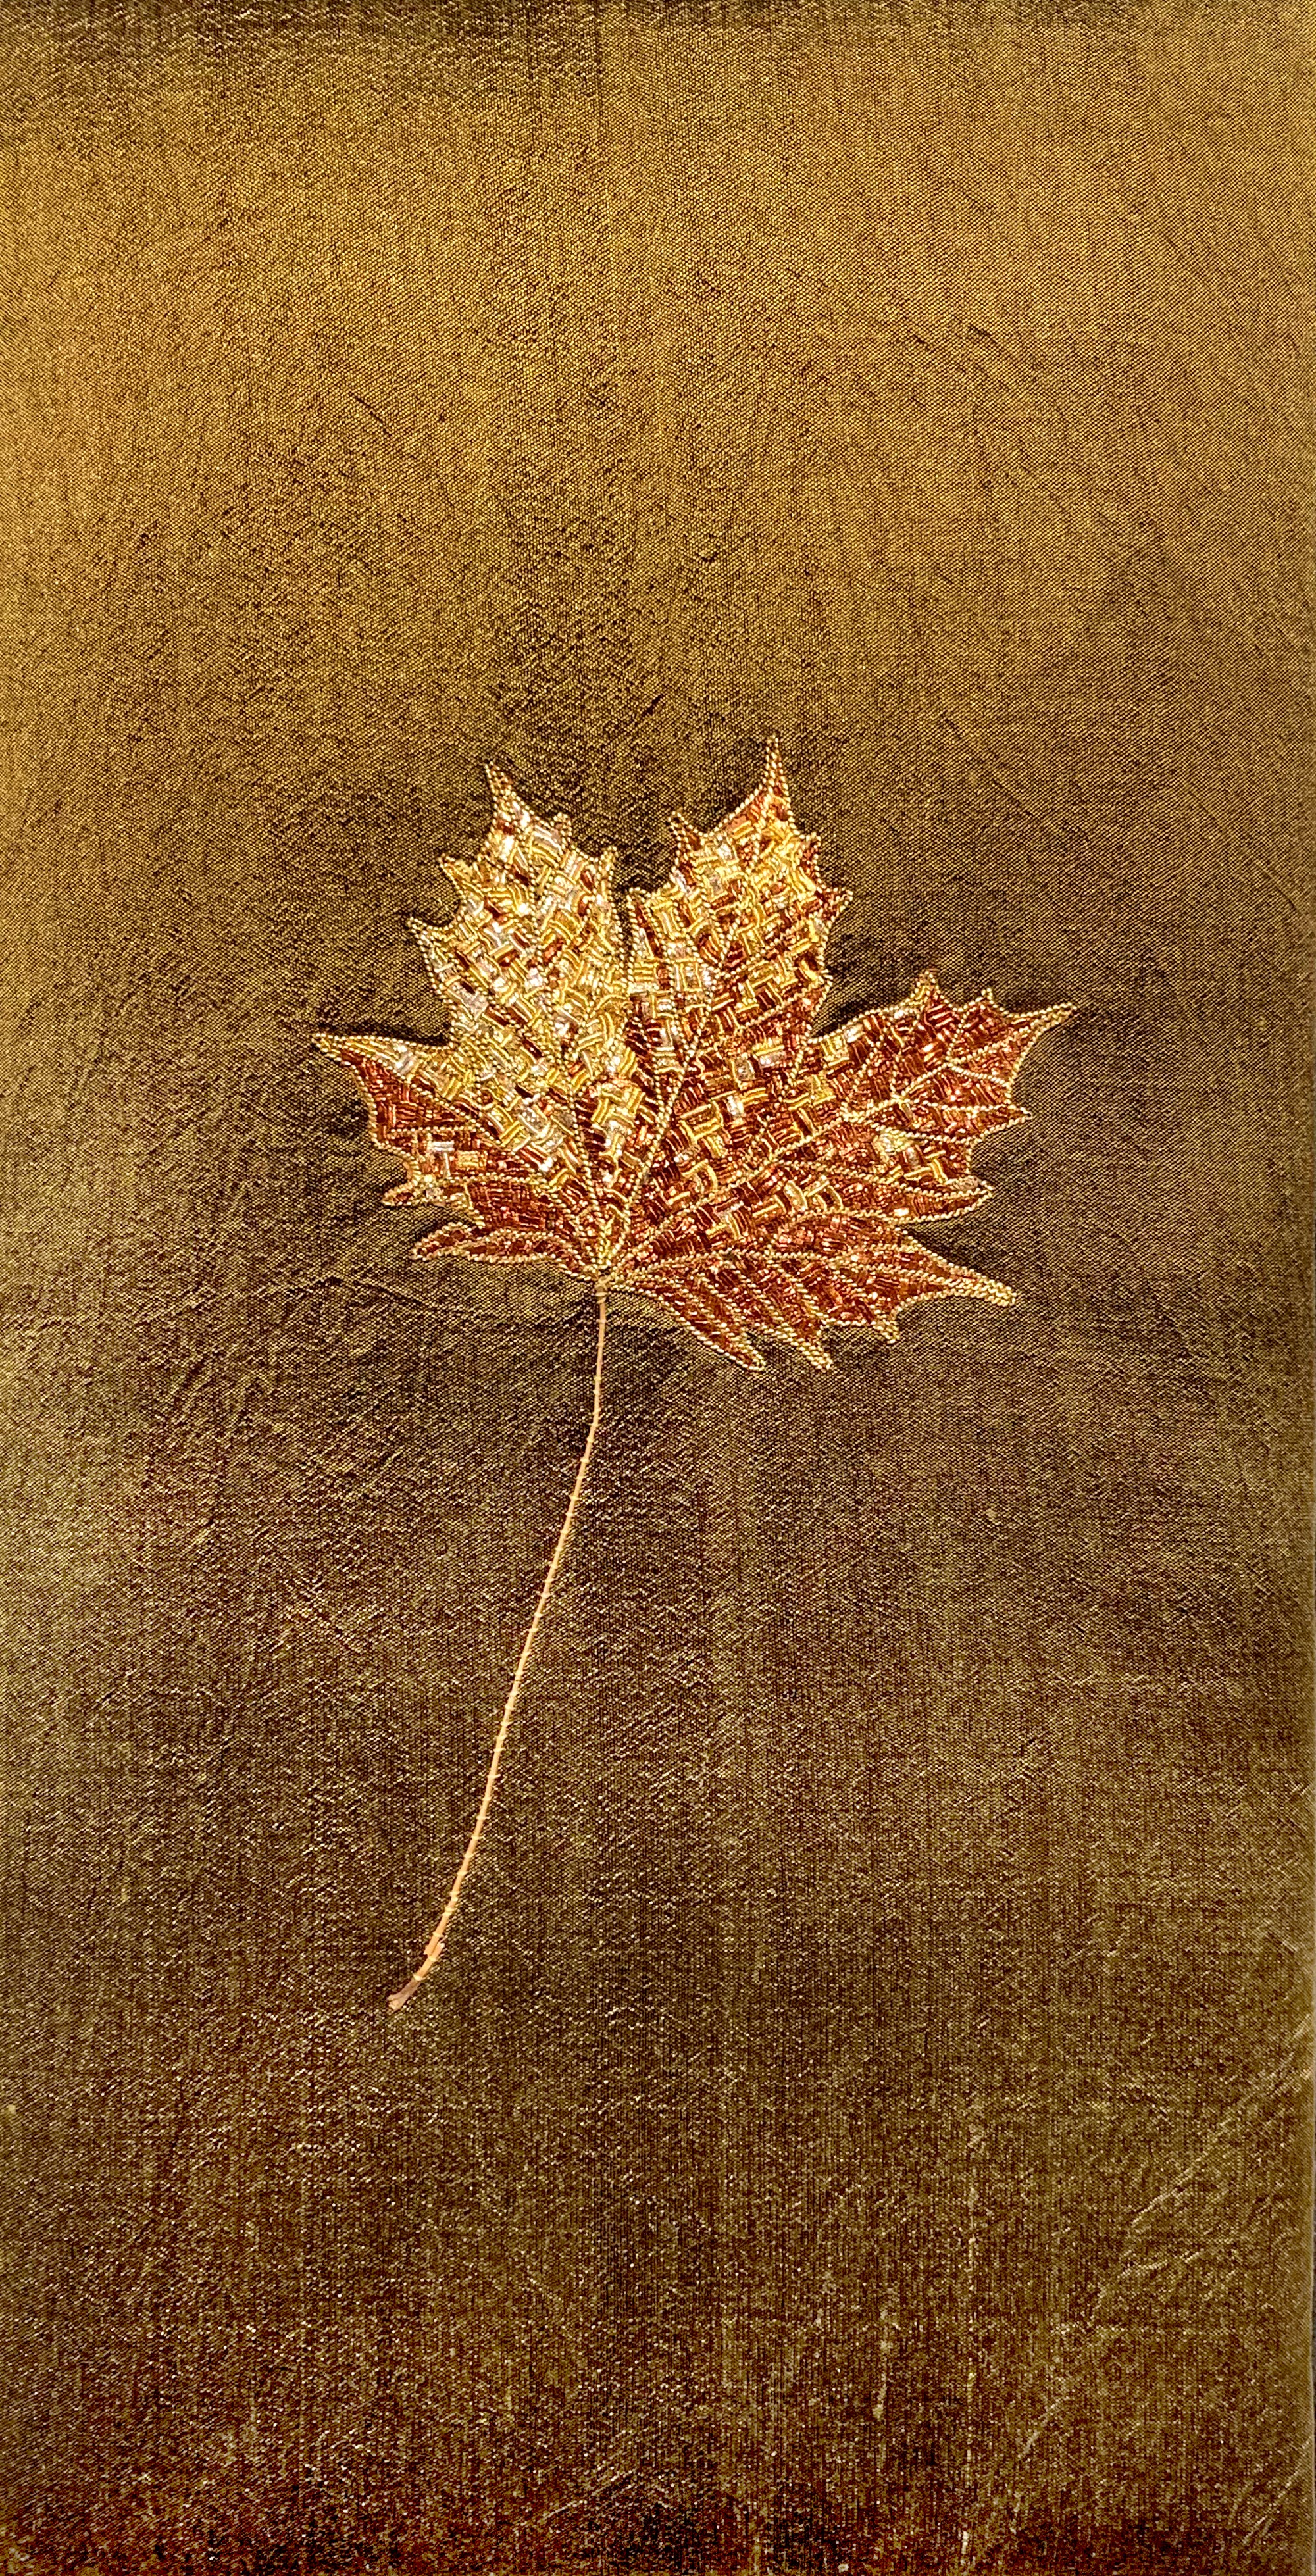 Autumn IV: Montreal Maple Leaf by Tiao Nithakhong Somsanith